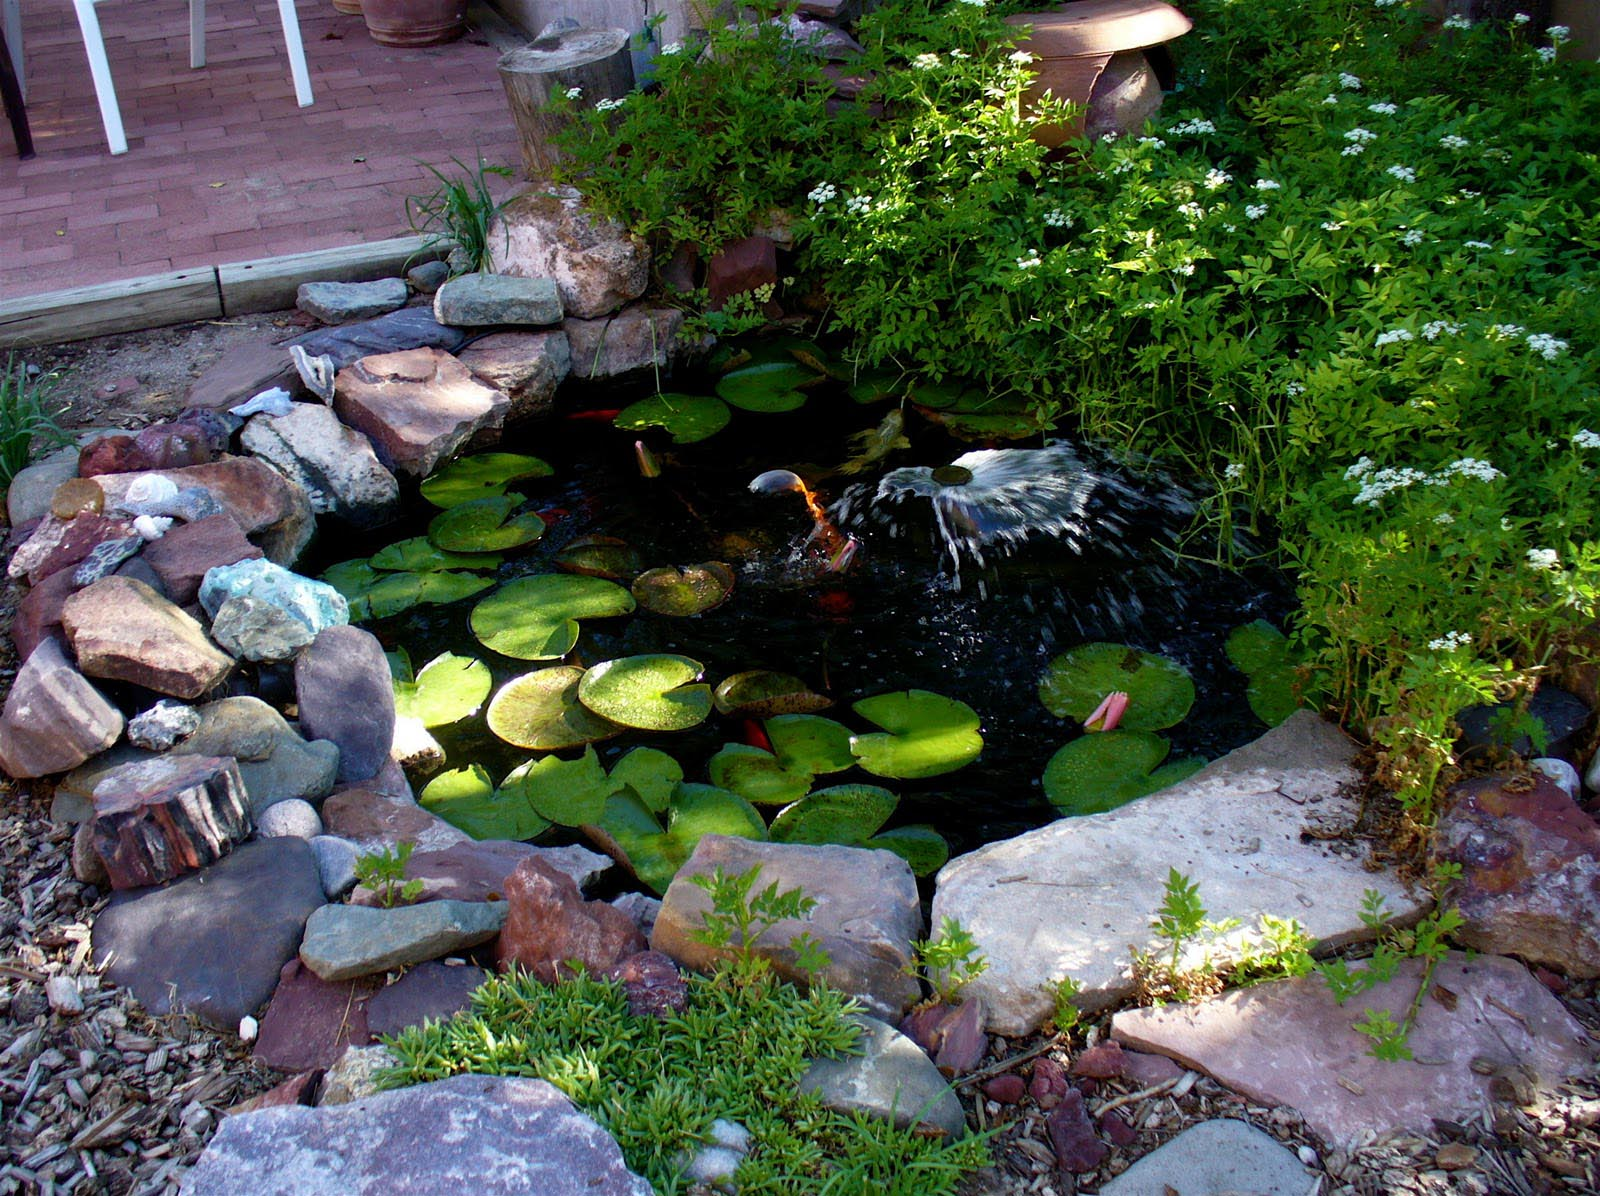 Garden fish pond ideas backyard design ideas Garden pond ideas